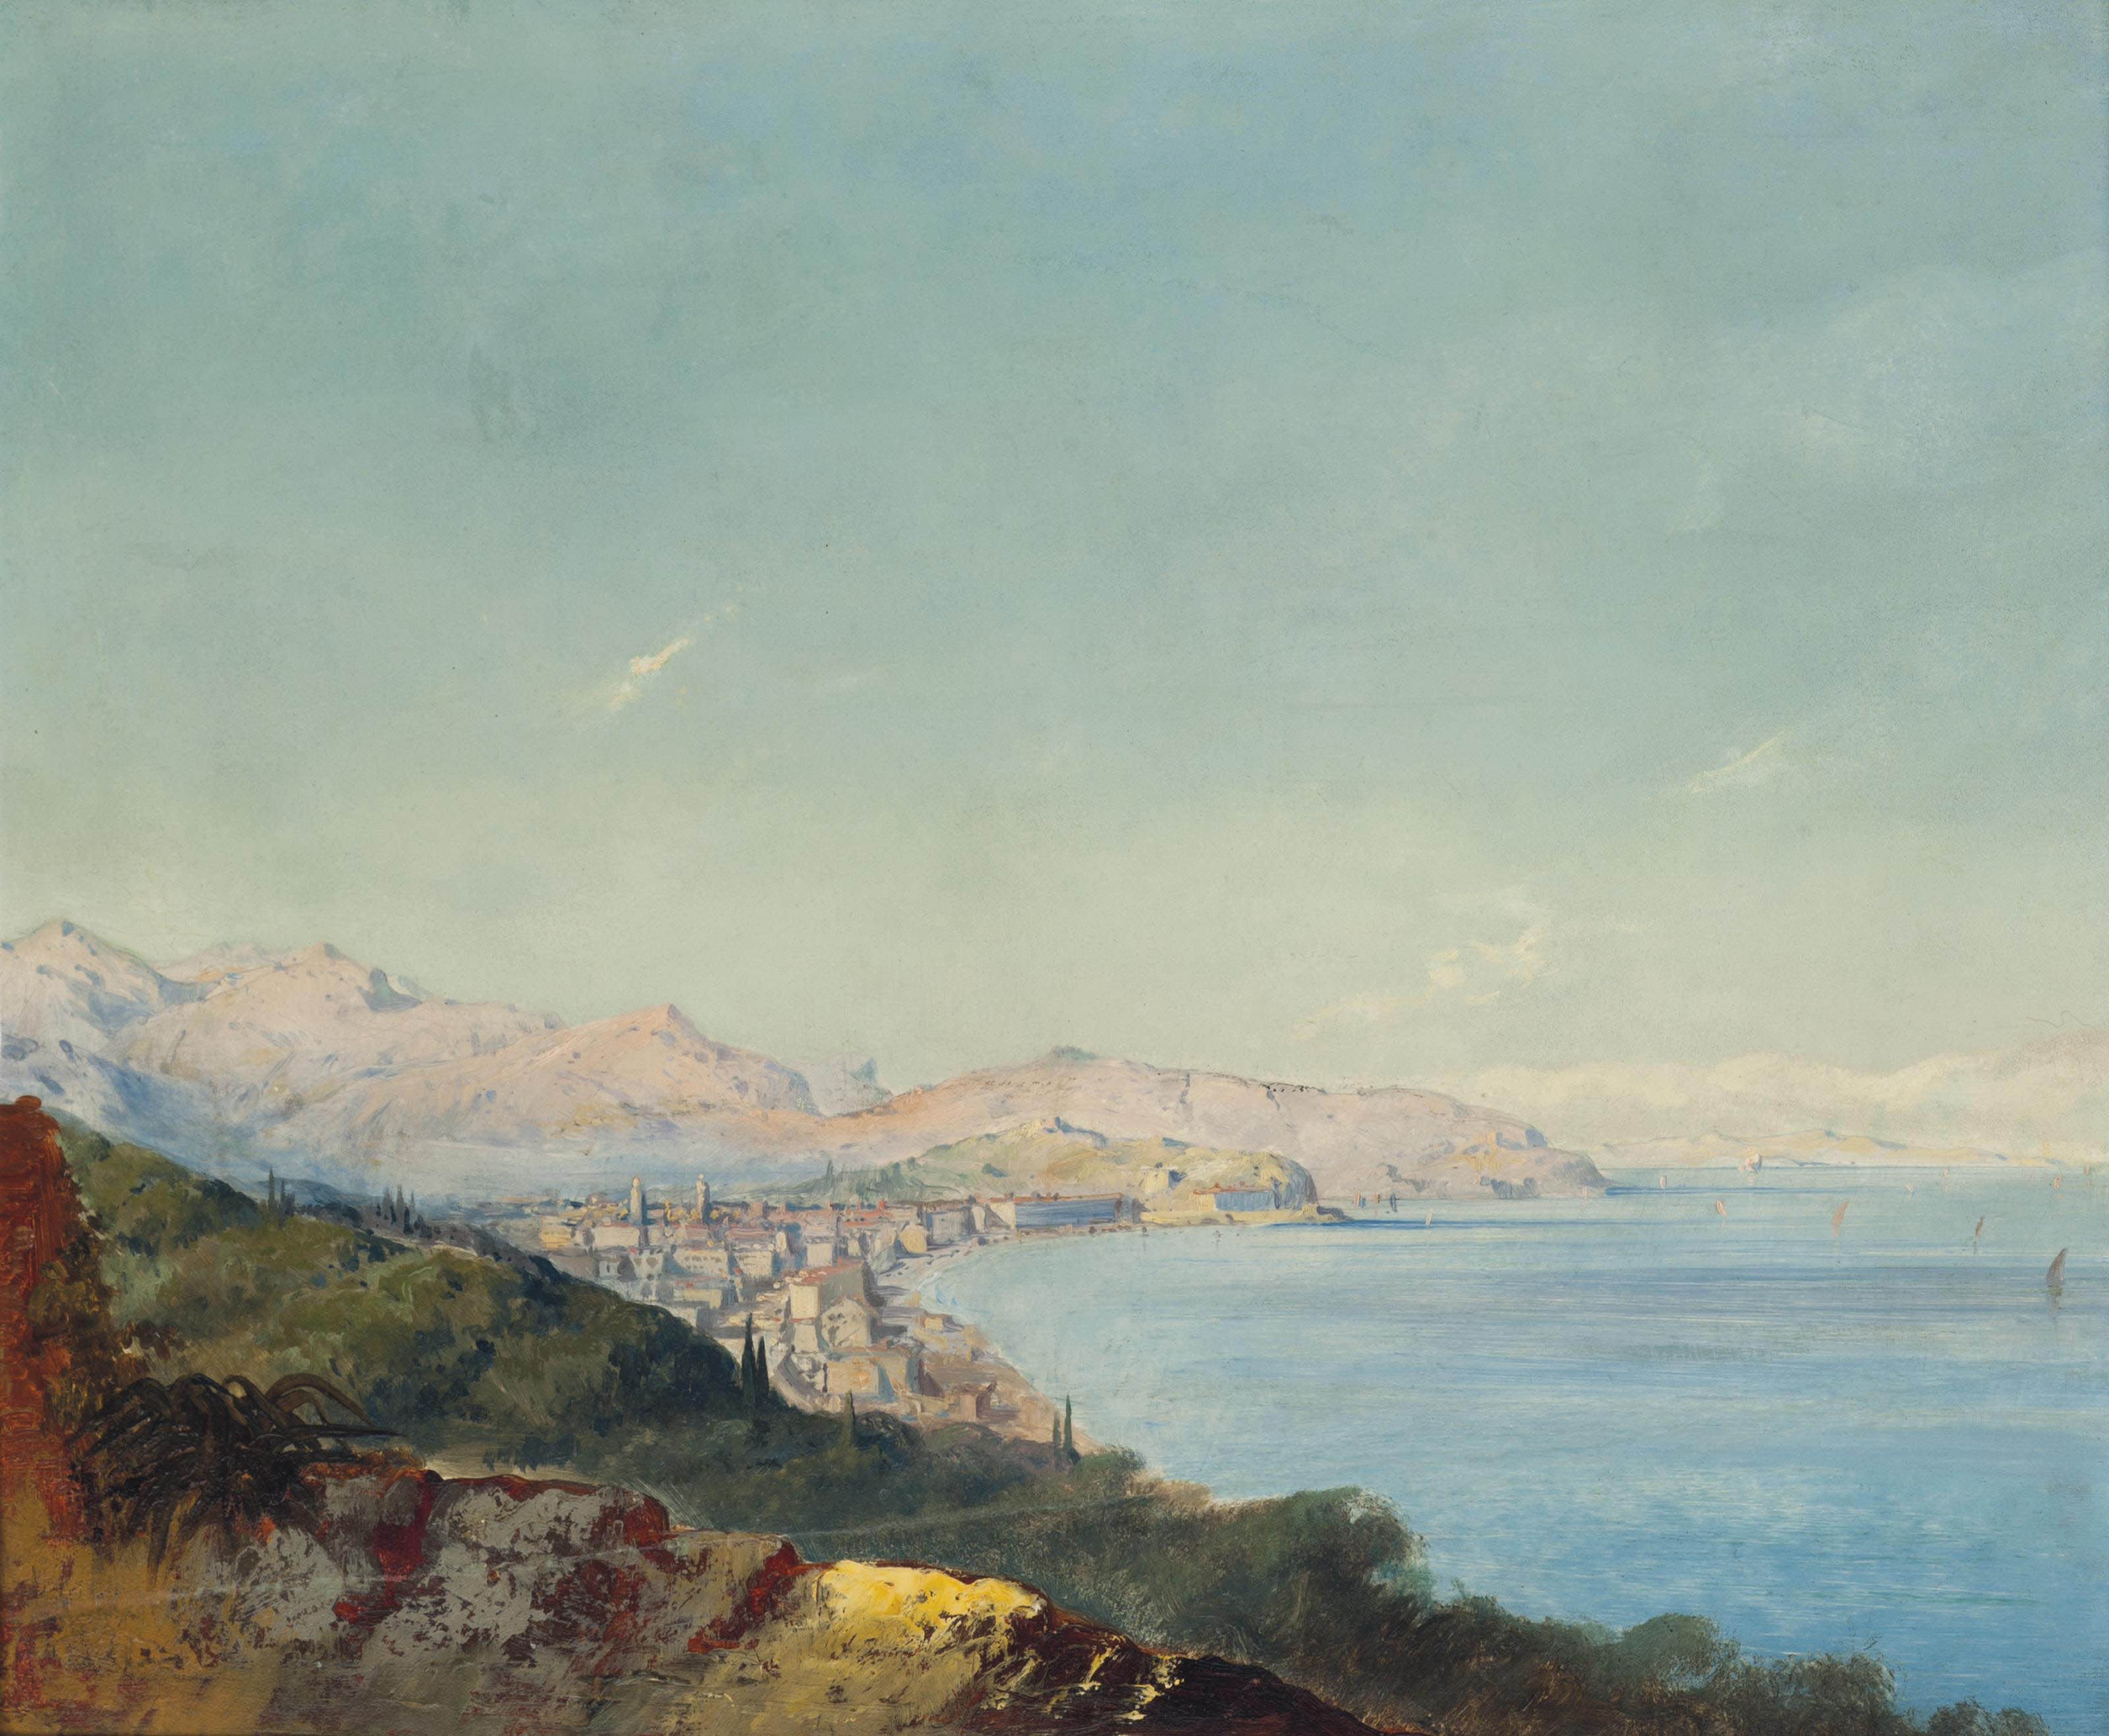 A view along a coast, traditionally identified as Nice